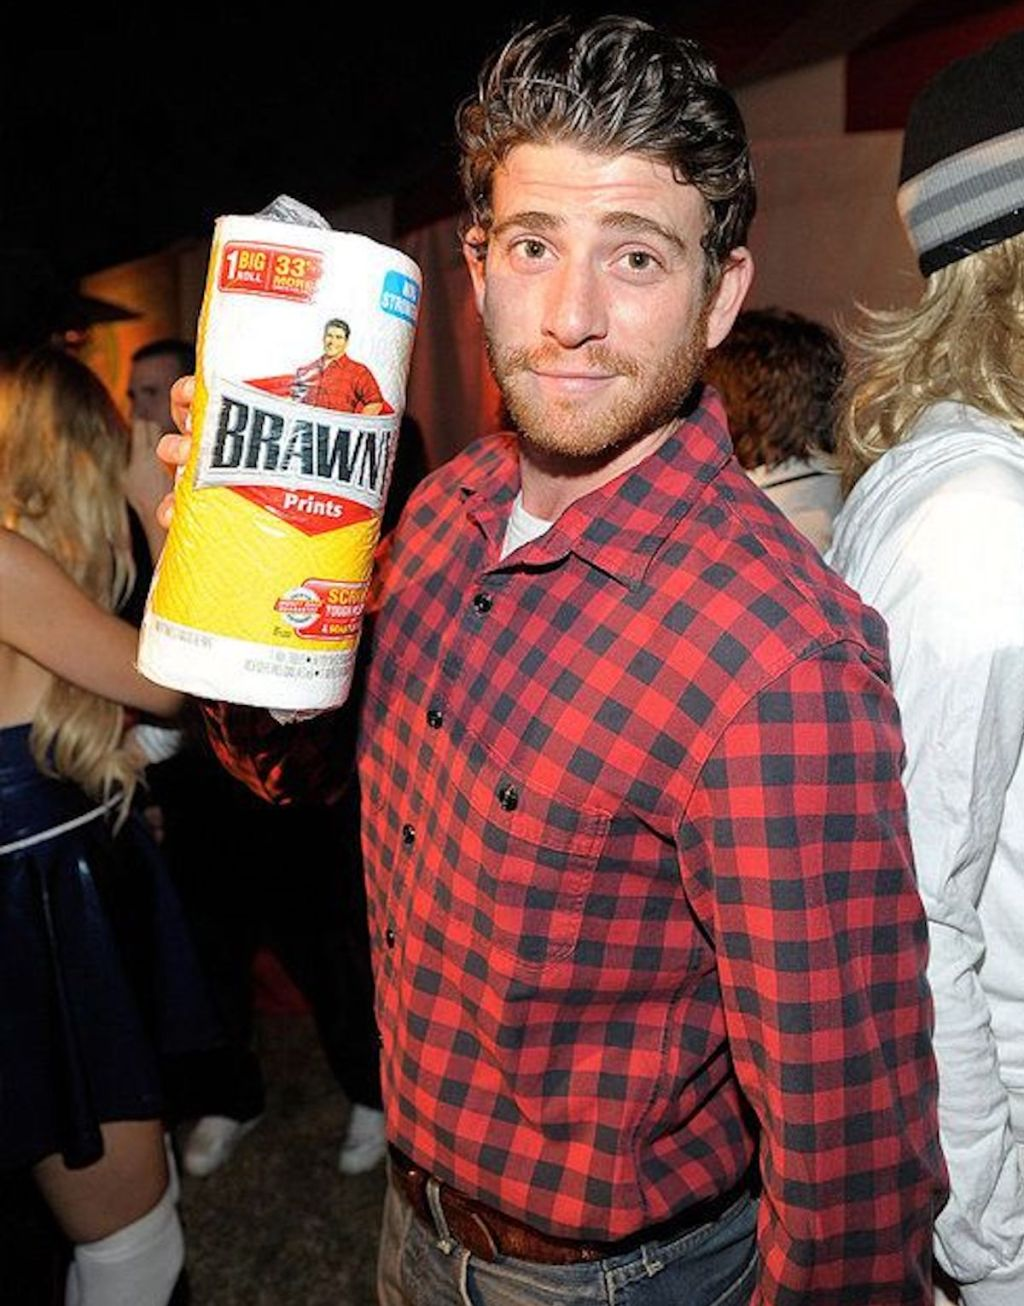 man wearing red flannel shirt and brawny paper towels